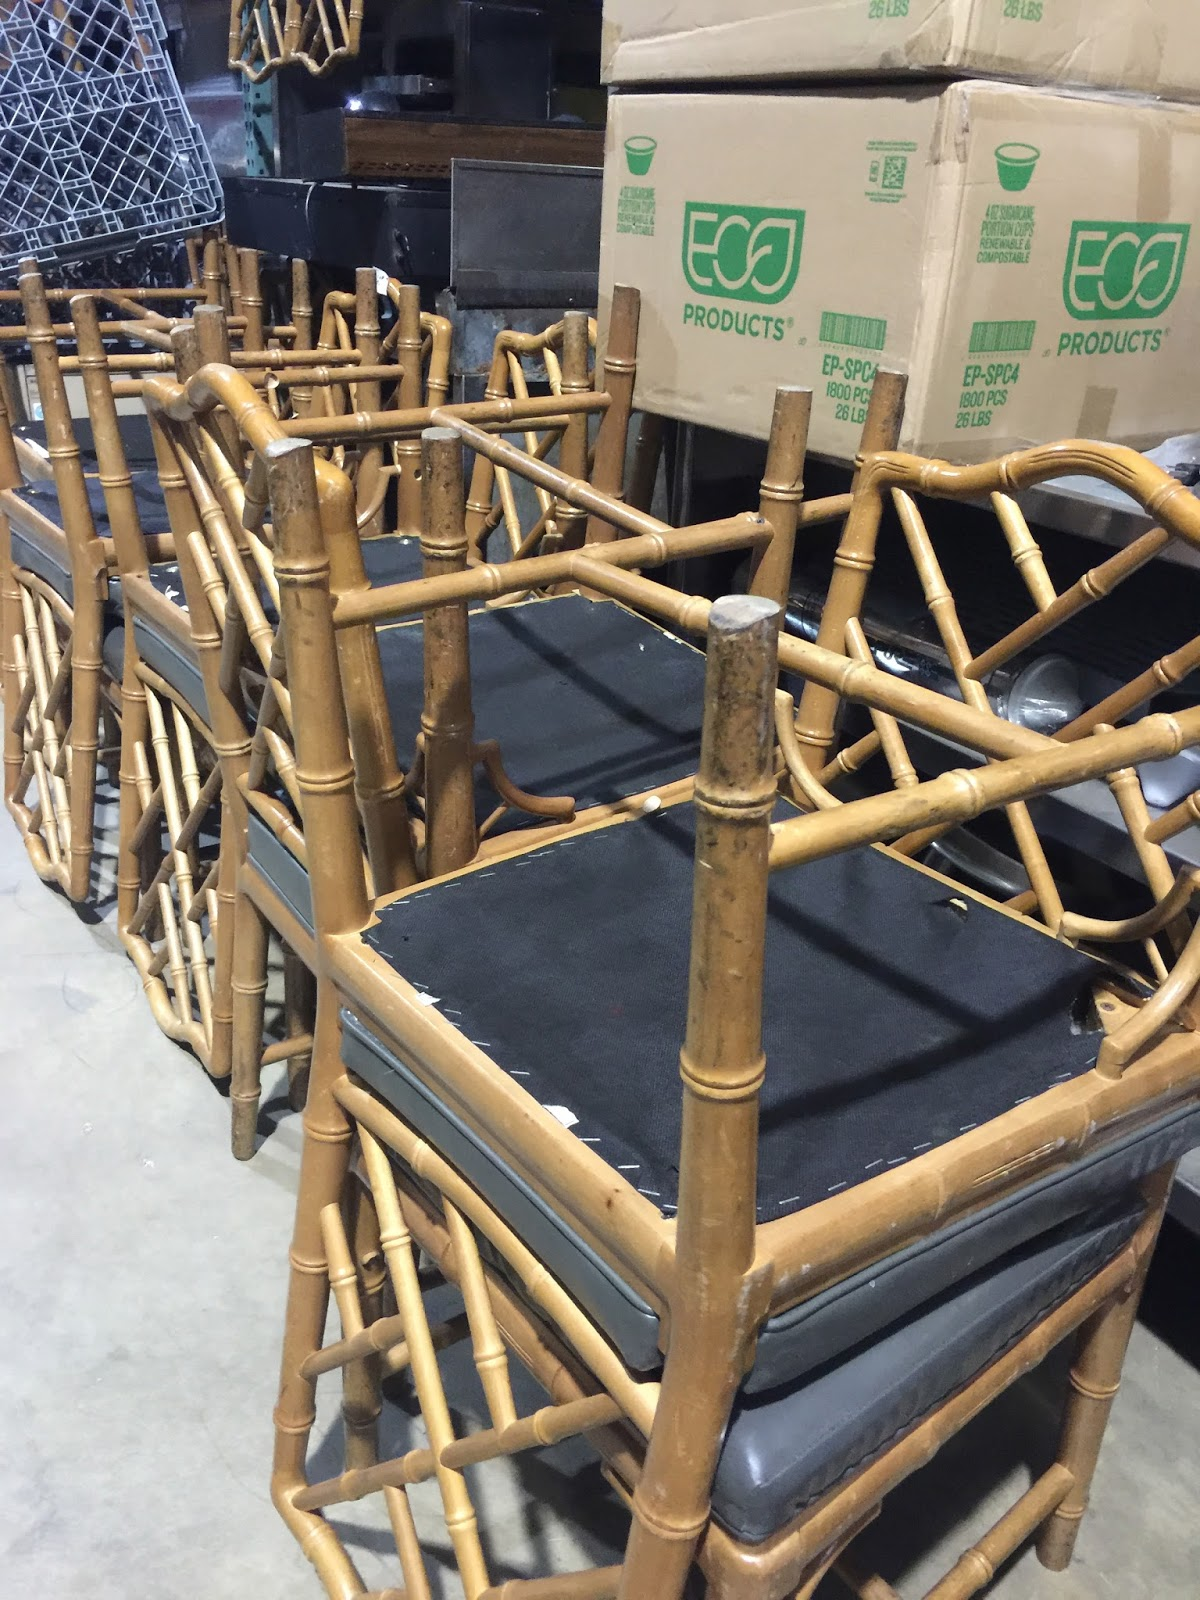 faux bamboo dining room chairs home with keki i got to sit in over 20 of them picking out 8 chairs that had not damage and were 100 sturdy of course i placed my babies gently into the van